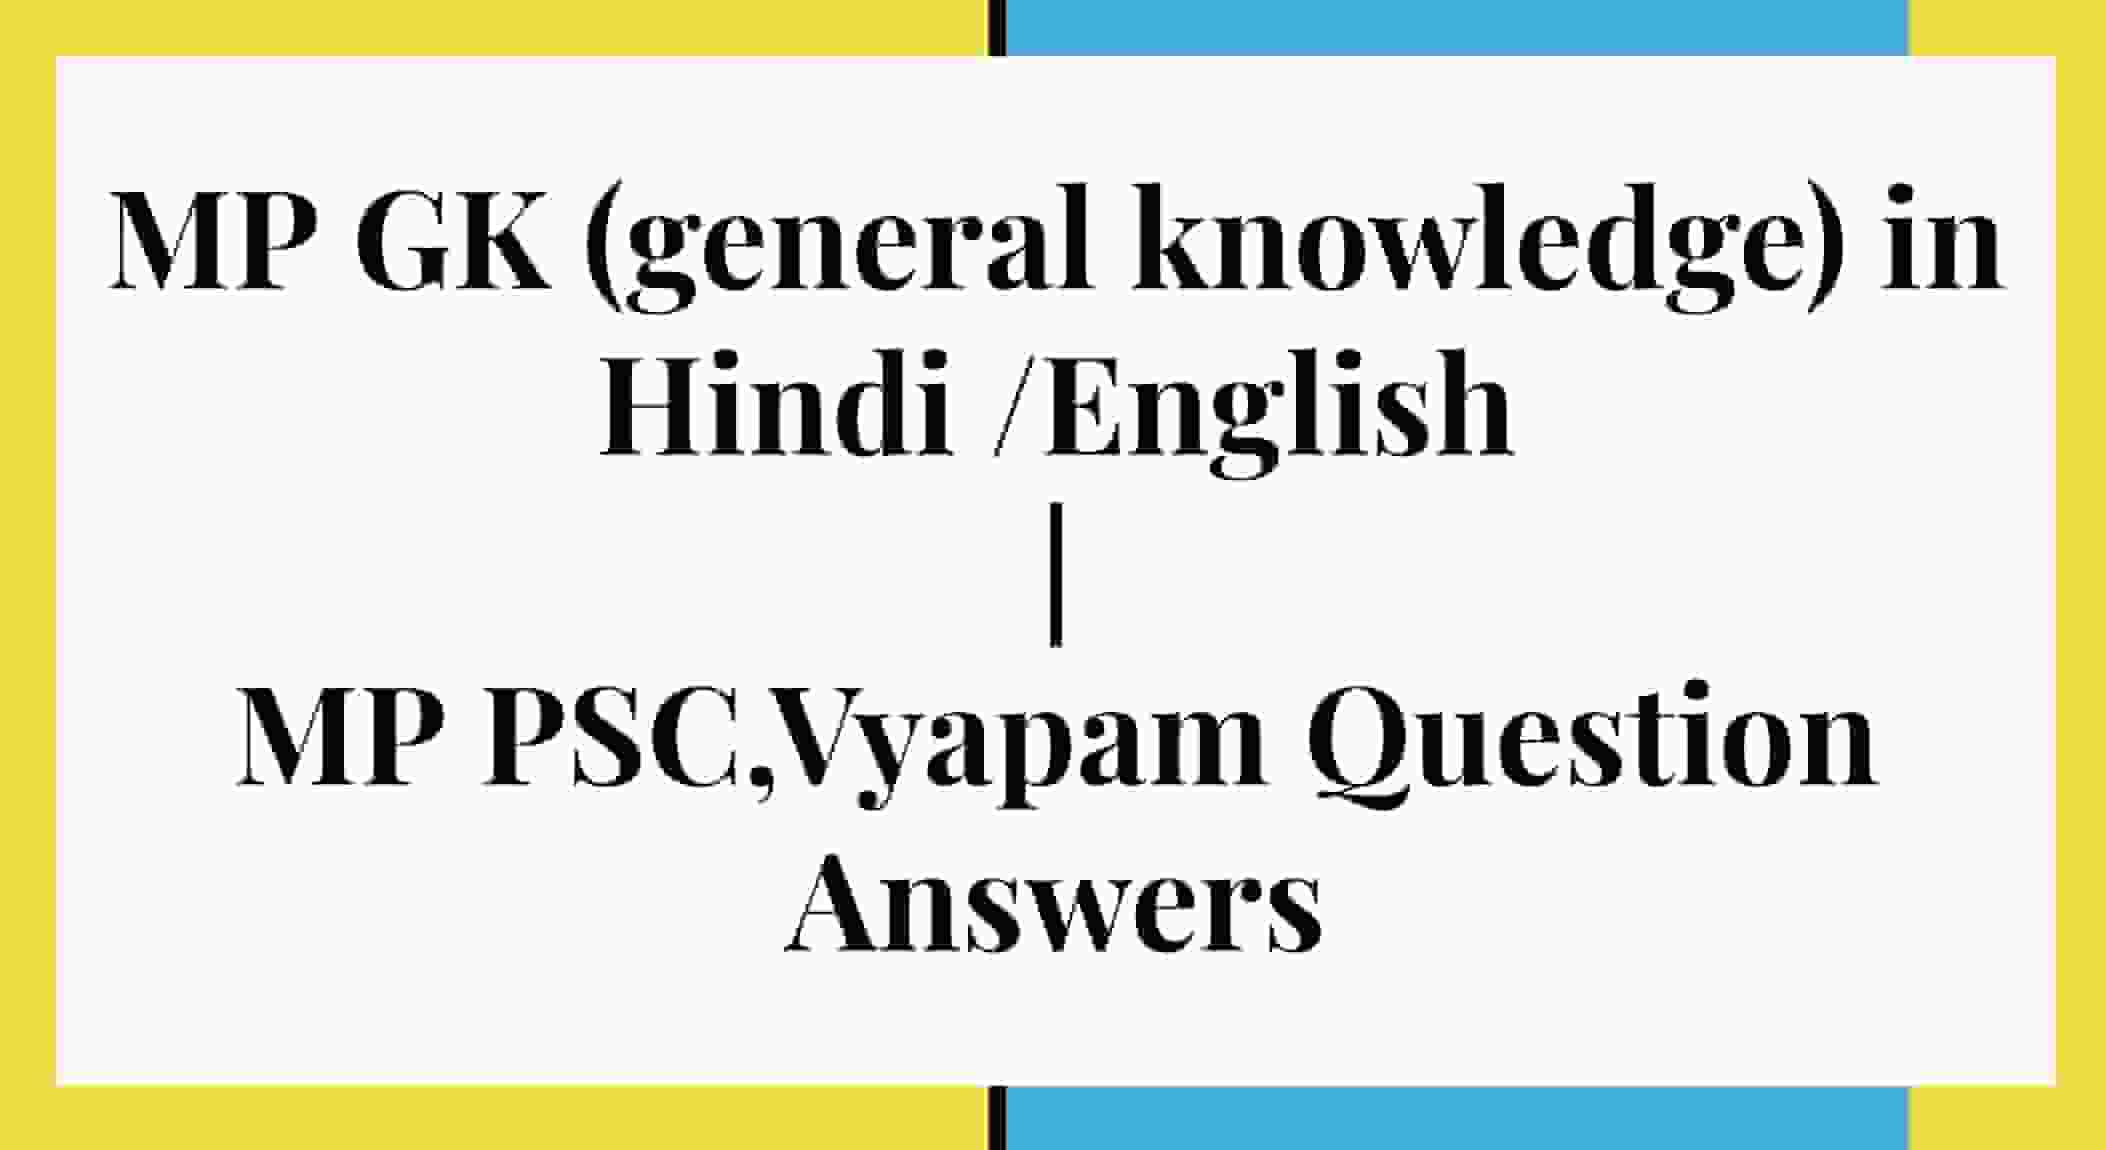 MP GK (general knowledge) in Hindi /English | MP PSC,Vyapam Question Answers